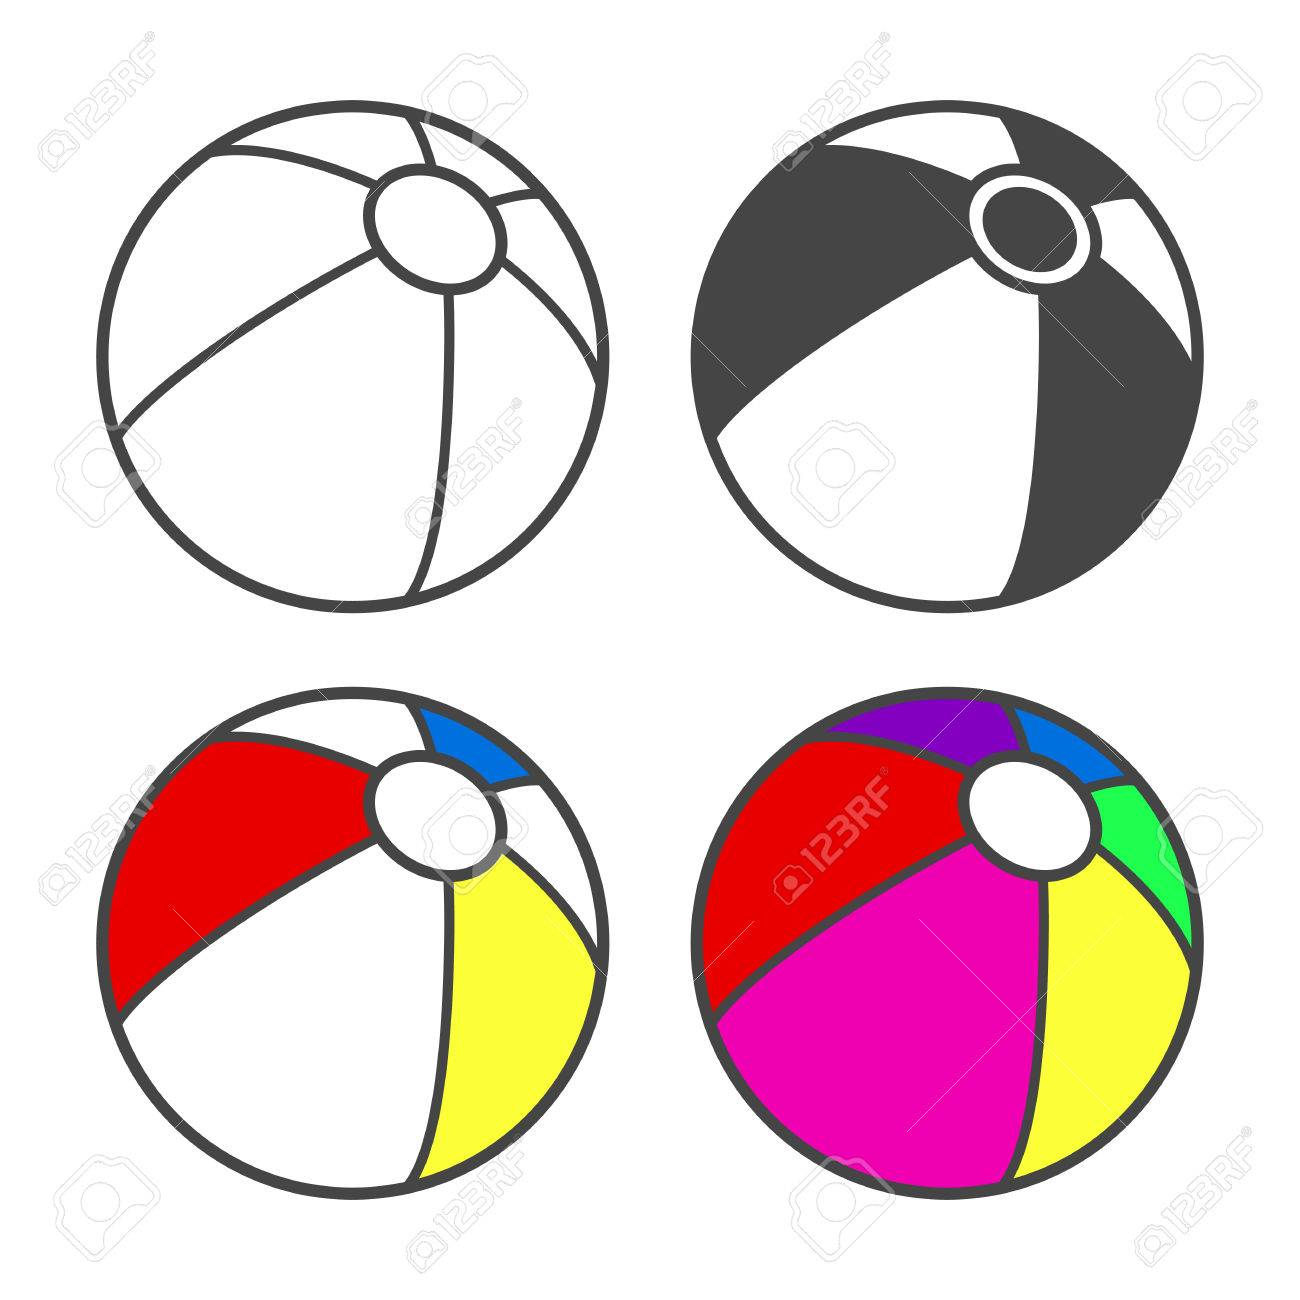 Toy Beach Ball For Coloring Book Isolated On White Vector Illustration Stock